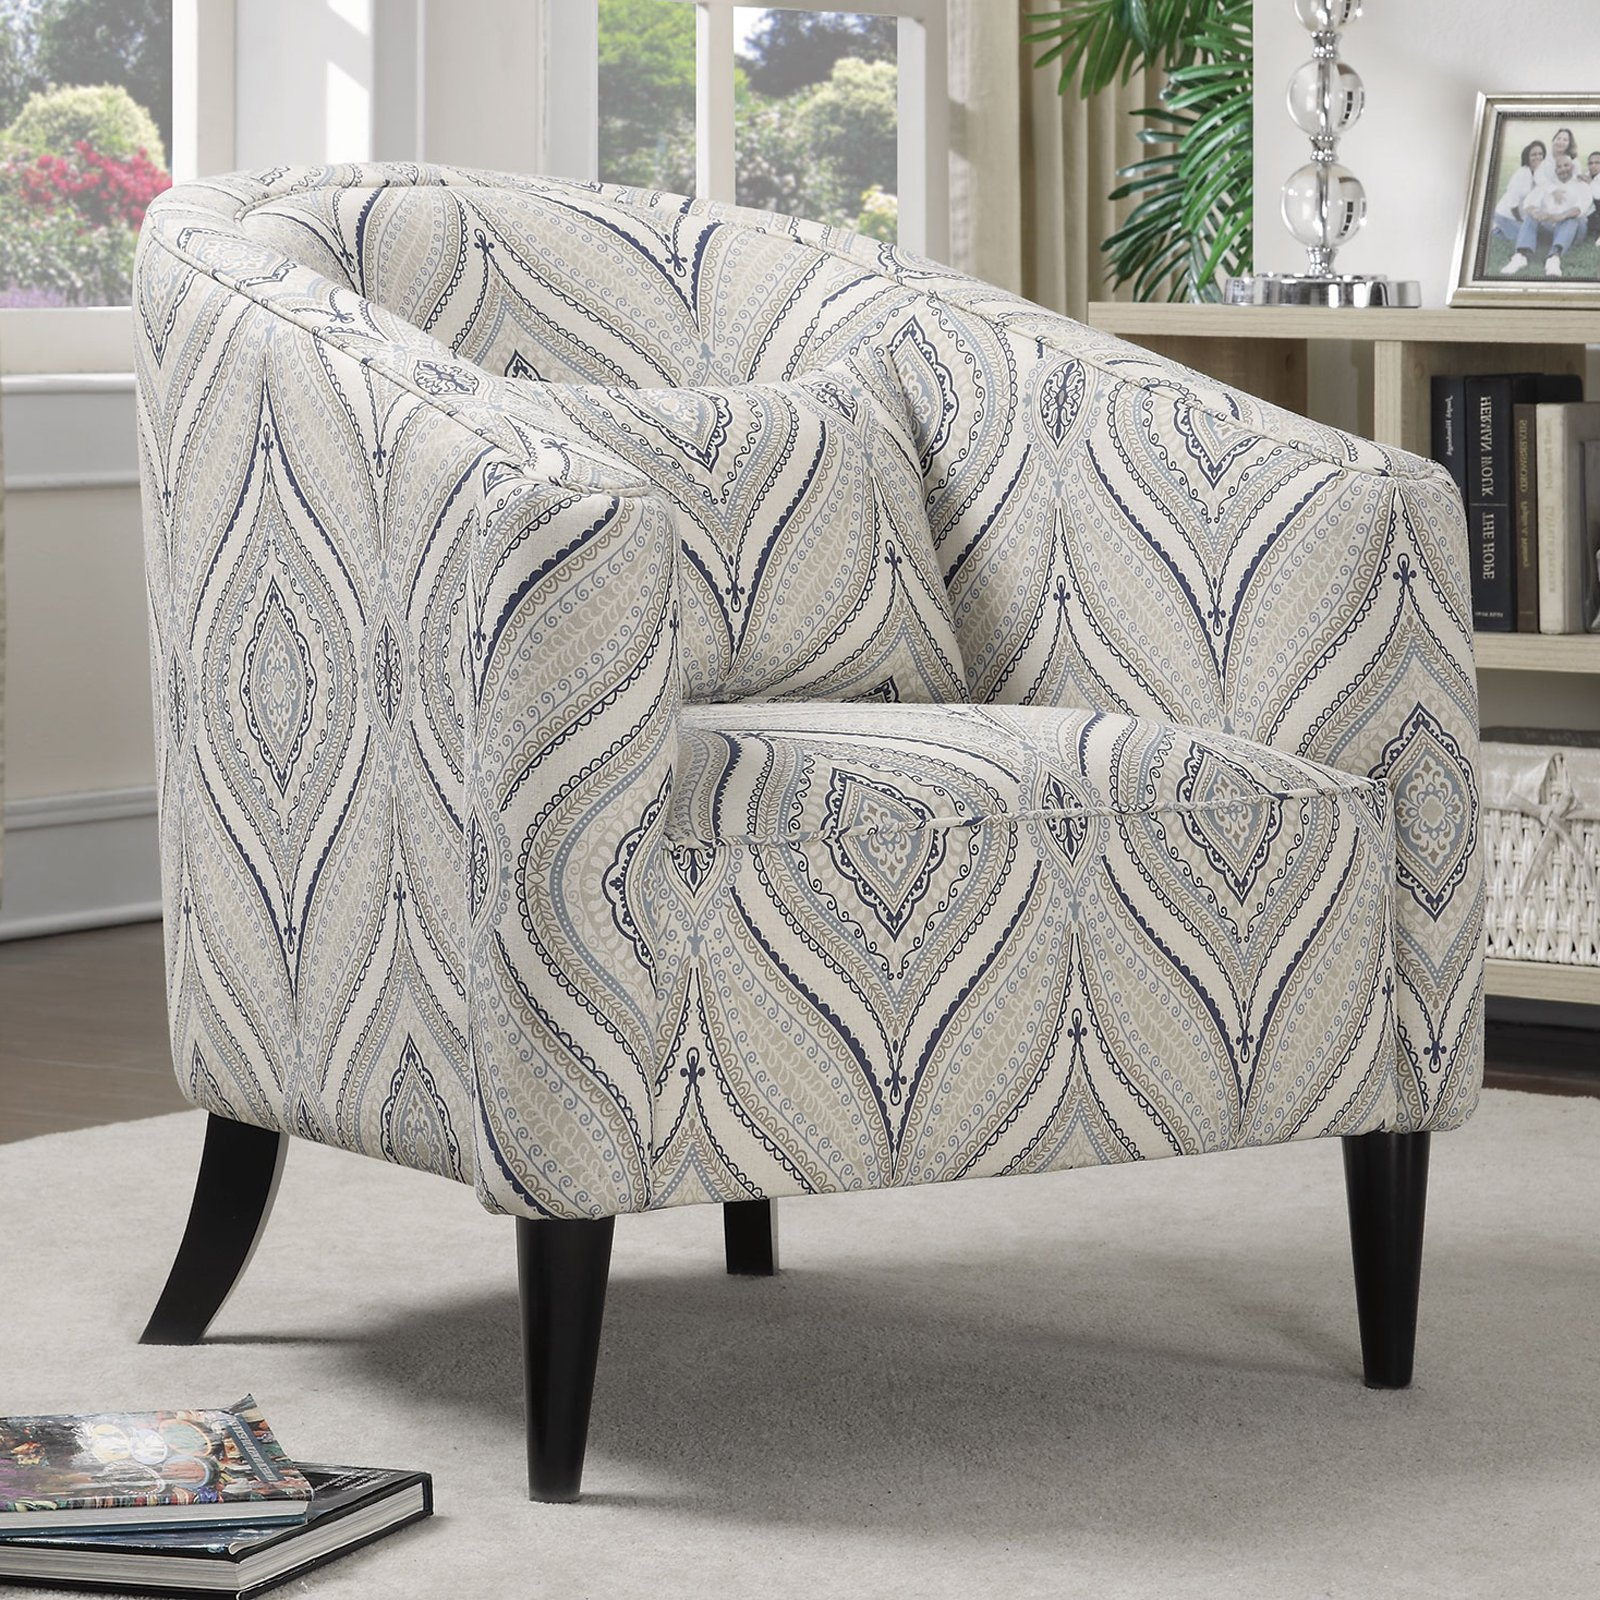 Attrayant Coaster Company Accent Chair, Off White/Blue/Grey Printed Linen Fabri    Walmart.com